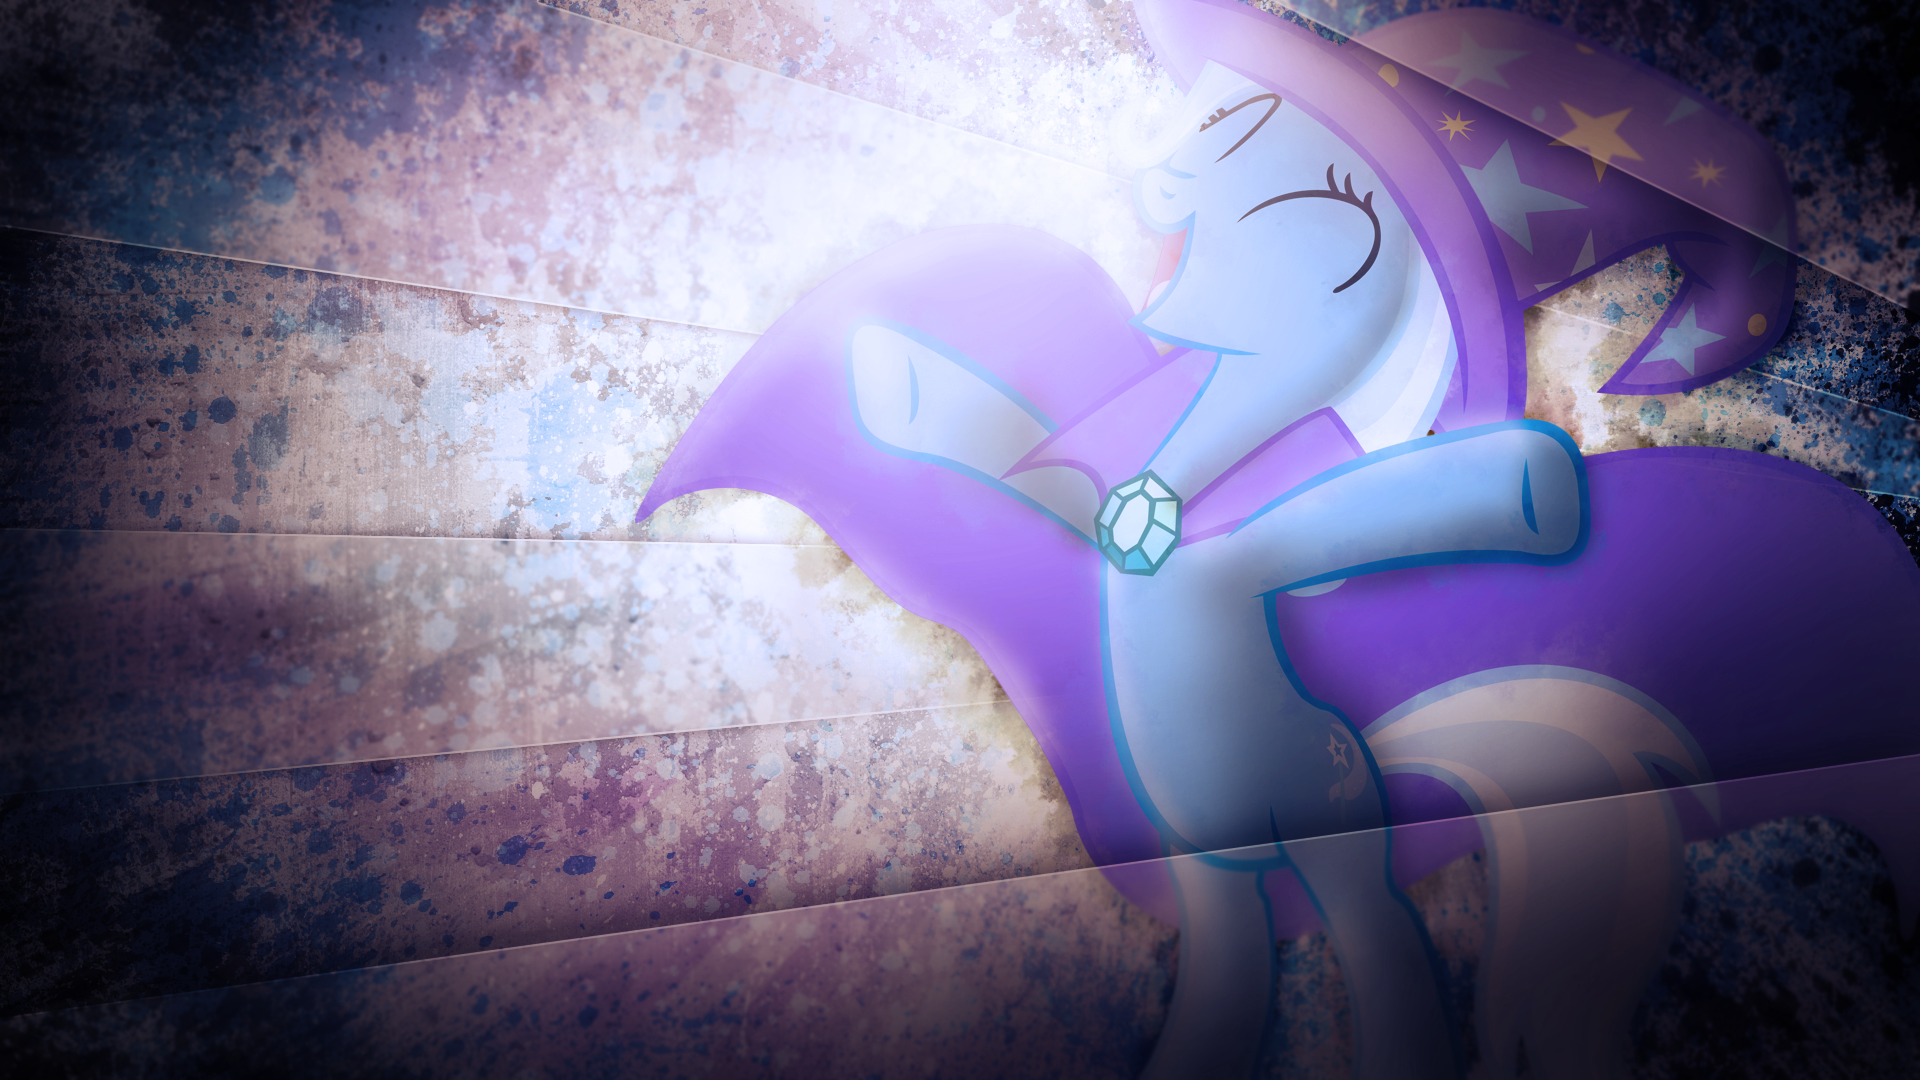 Great and Powerful by SandwichDelta and Shelmo69